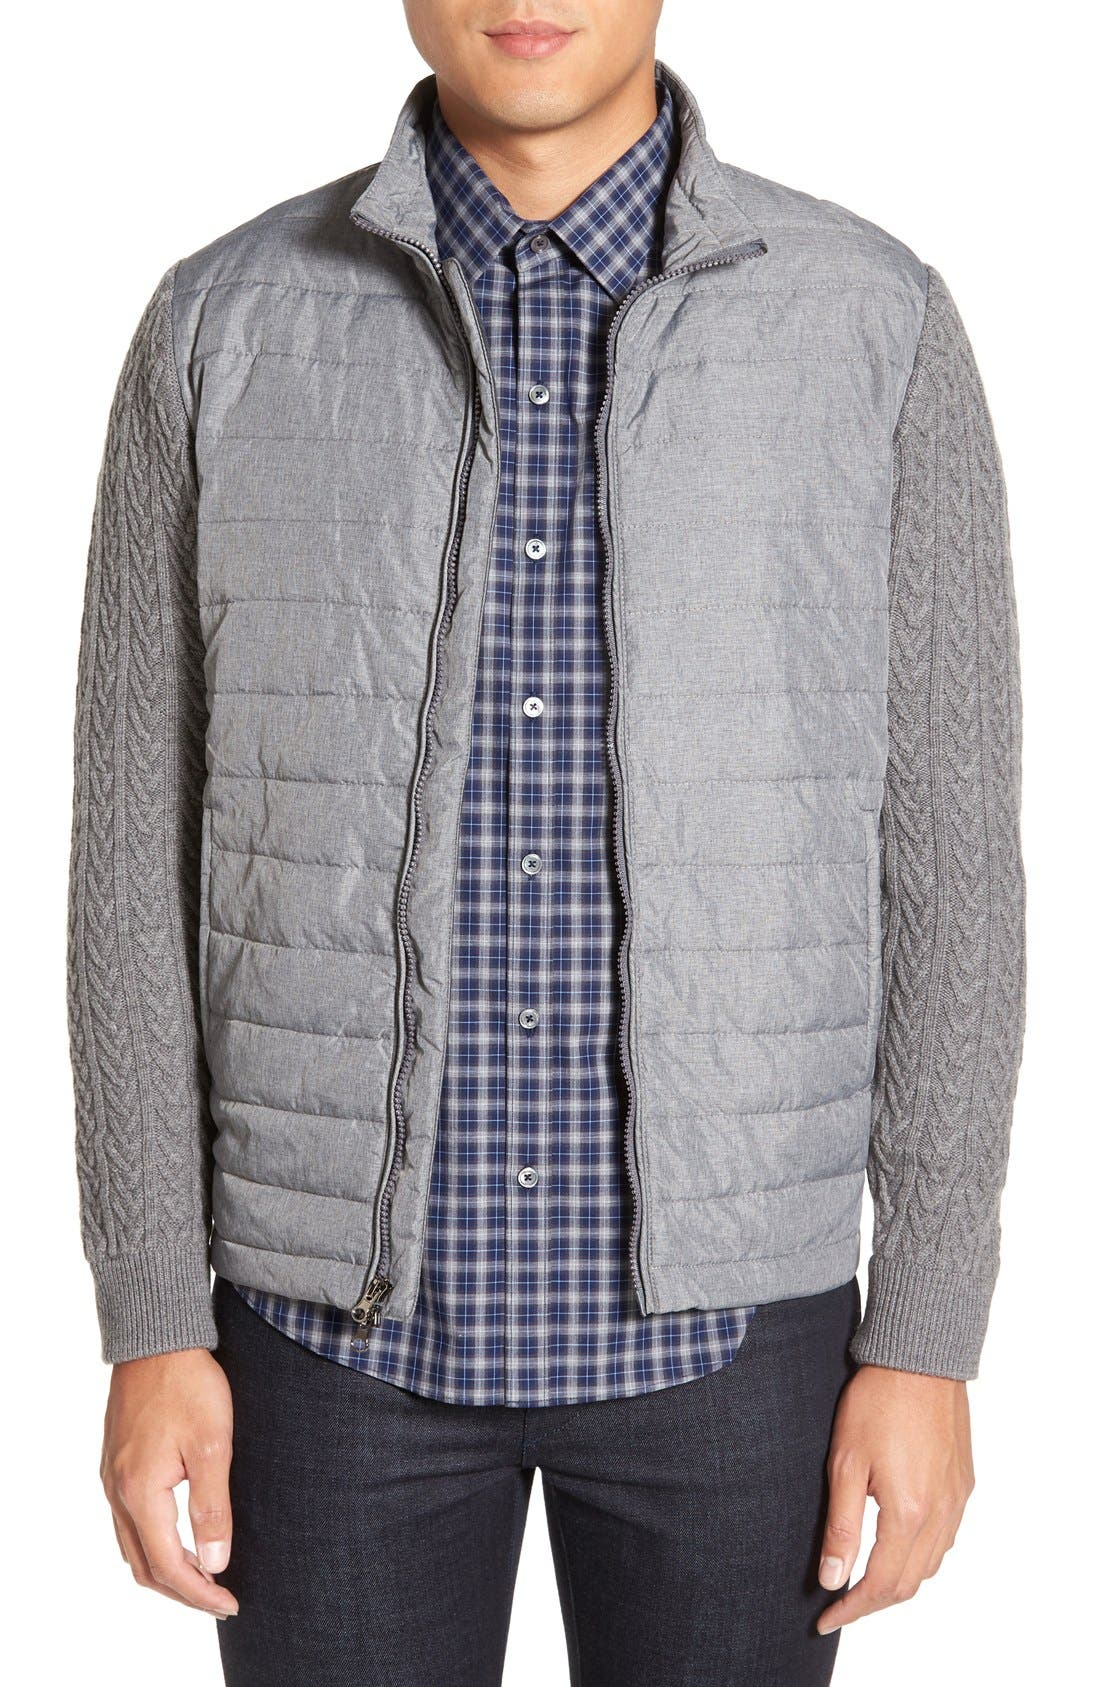 Main Image - Zachary Prell 'Beacon' Trim Fit Quilted Cable Knit Zip Sweater